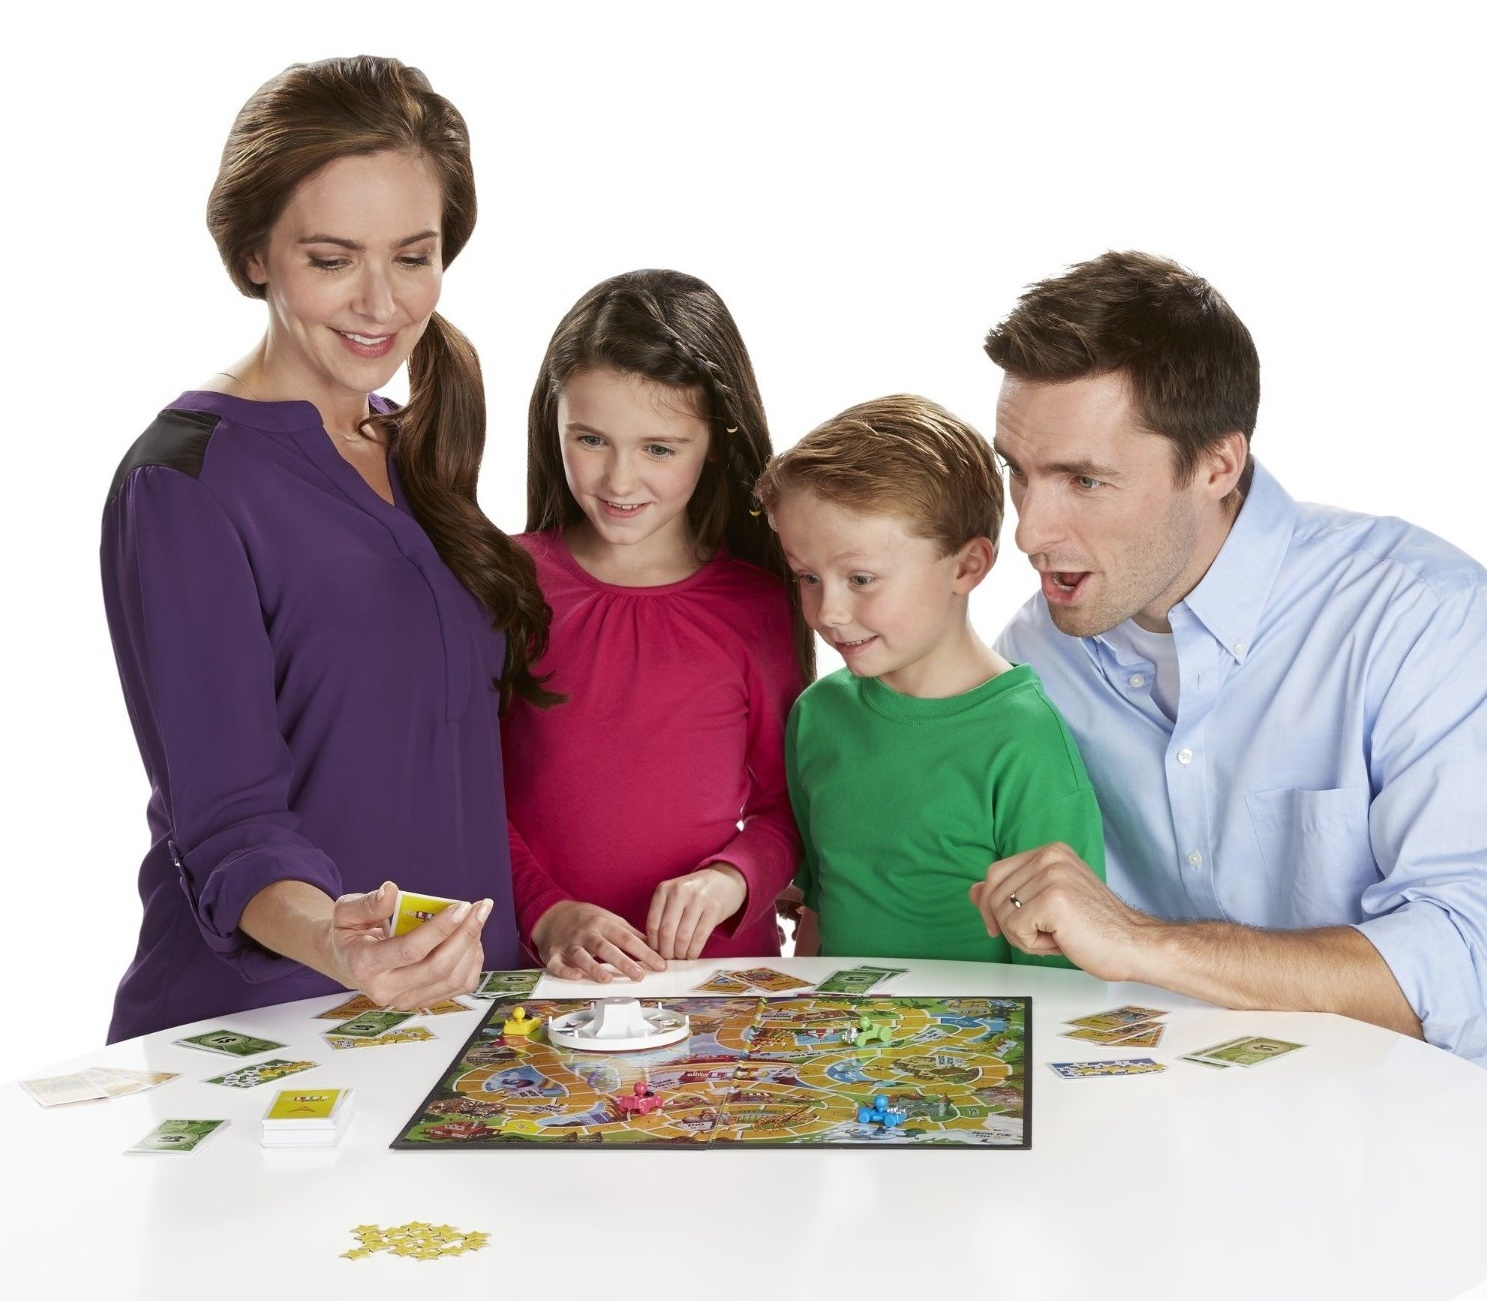 The Game Of Life - Junior Edition image